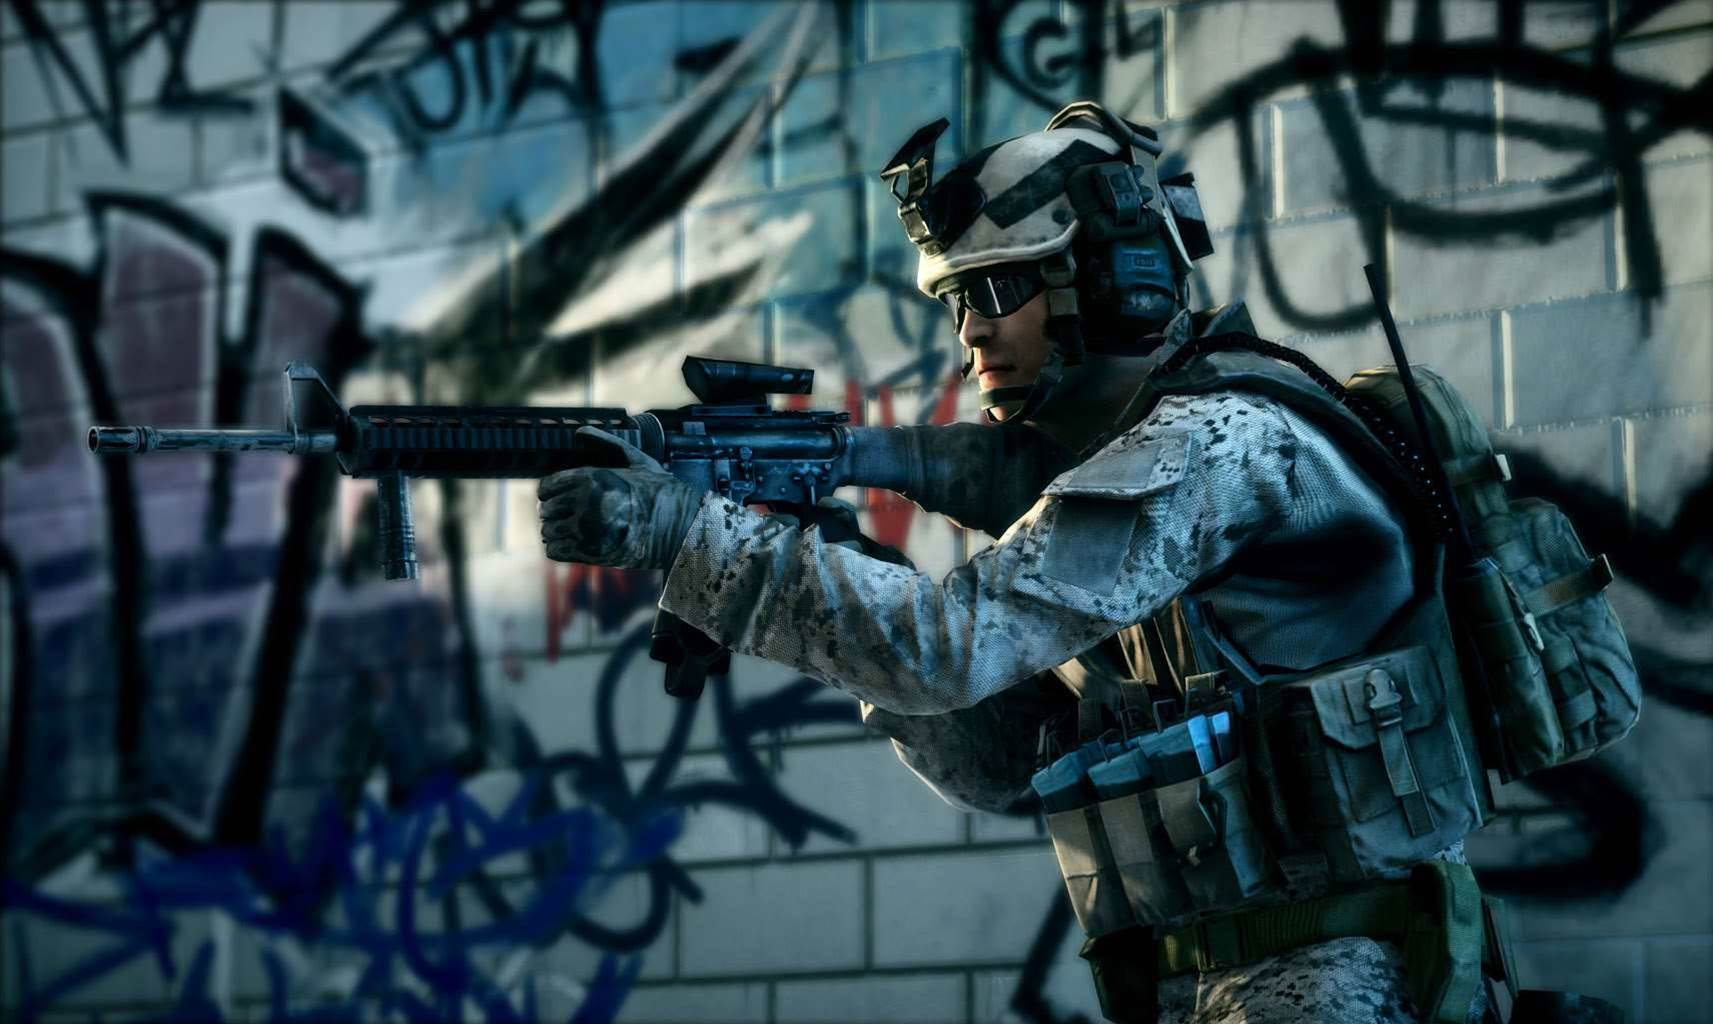 New Battlefield 3 trailer shows off the Physical Warfare Pack